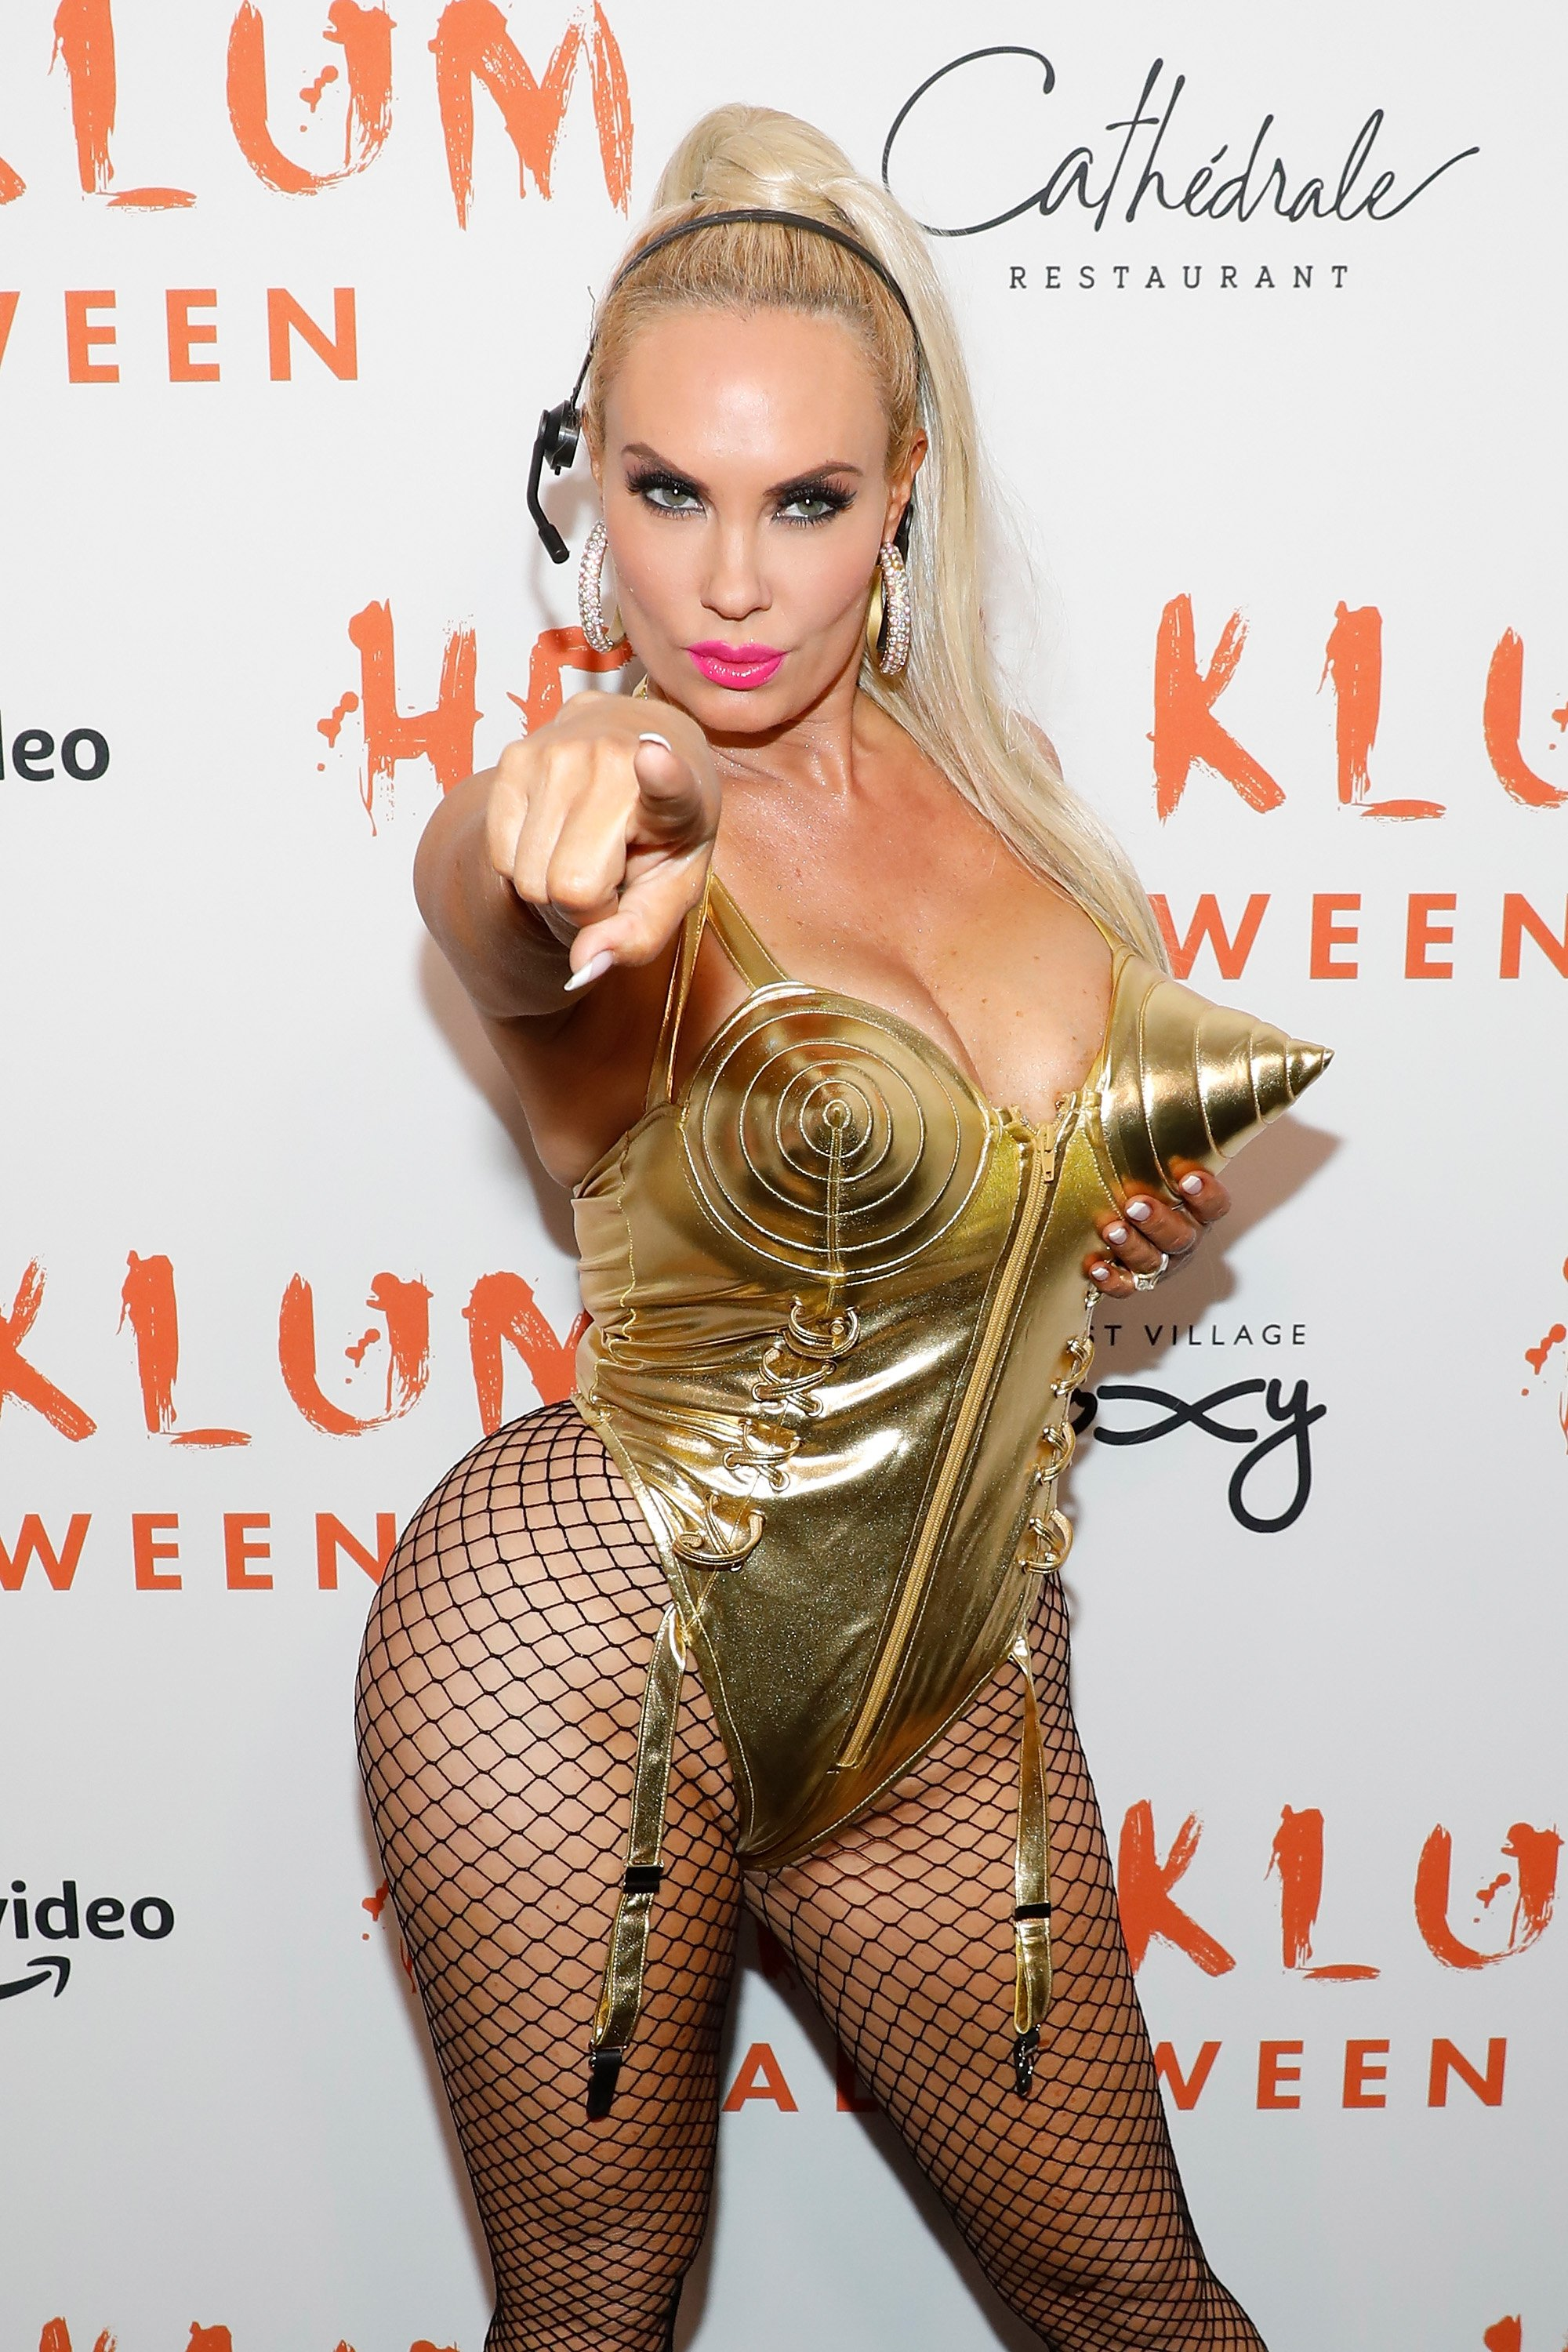 Coco Austin attends Heidi Klum's Annual Hallowe'en Party at Cathedrale on October 31, 2019 |Photo: Getty Images